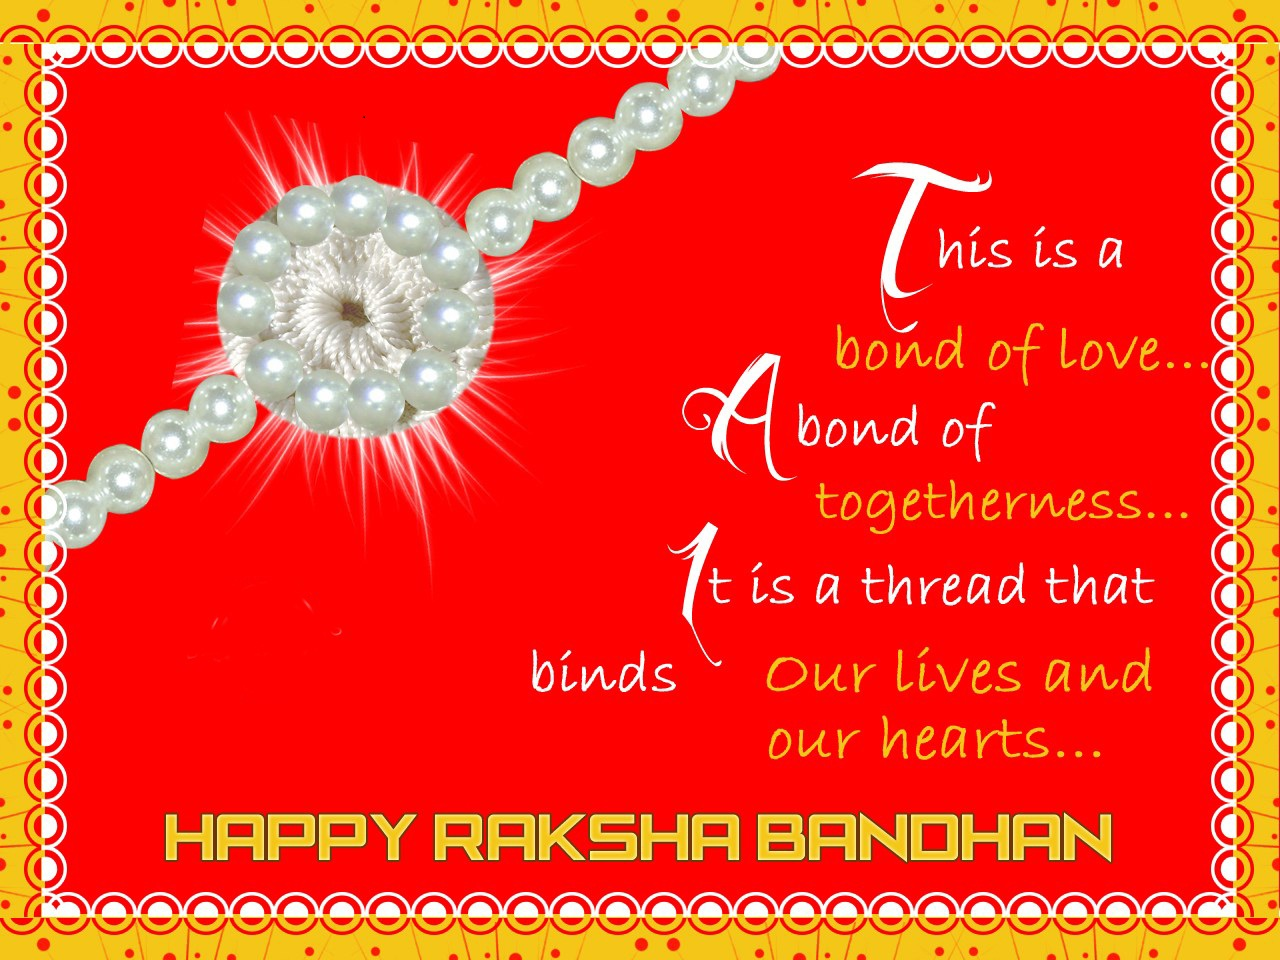 Happy raksha bandhan wishes and messages in english for 2018 having a brother like you is a wonderful feeling as i have a person to rely on anytime and anywhere in this world happy rakshabandhan m4hsunfo